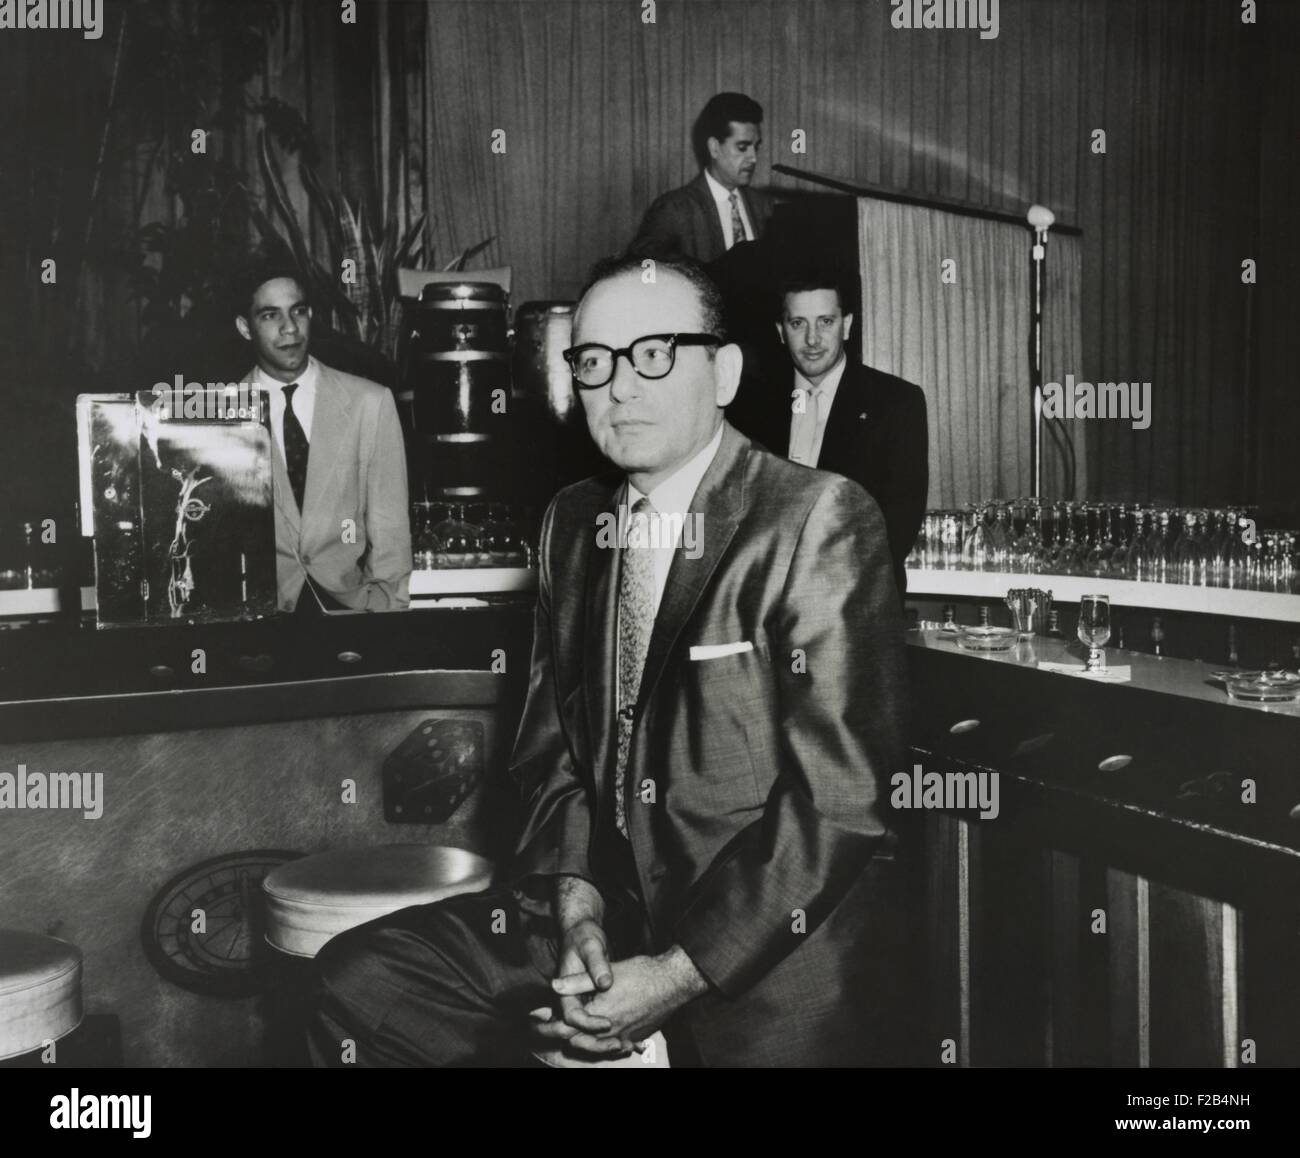 Gangster Santo Trafficante sitting on a stool in his Sans Souci Night Club in Havana, Cuba. Jan. 15, 1958. He was - Stock Image